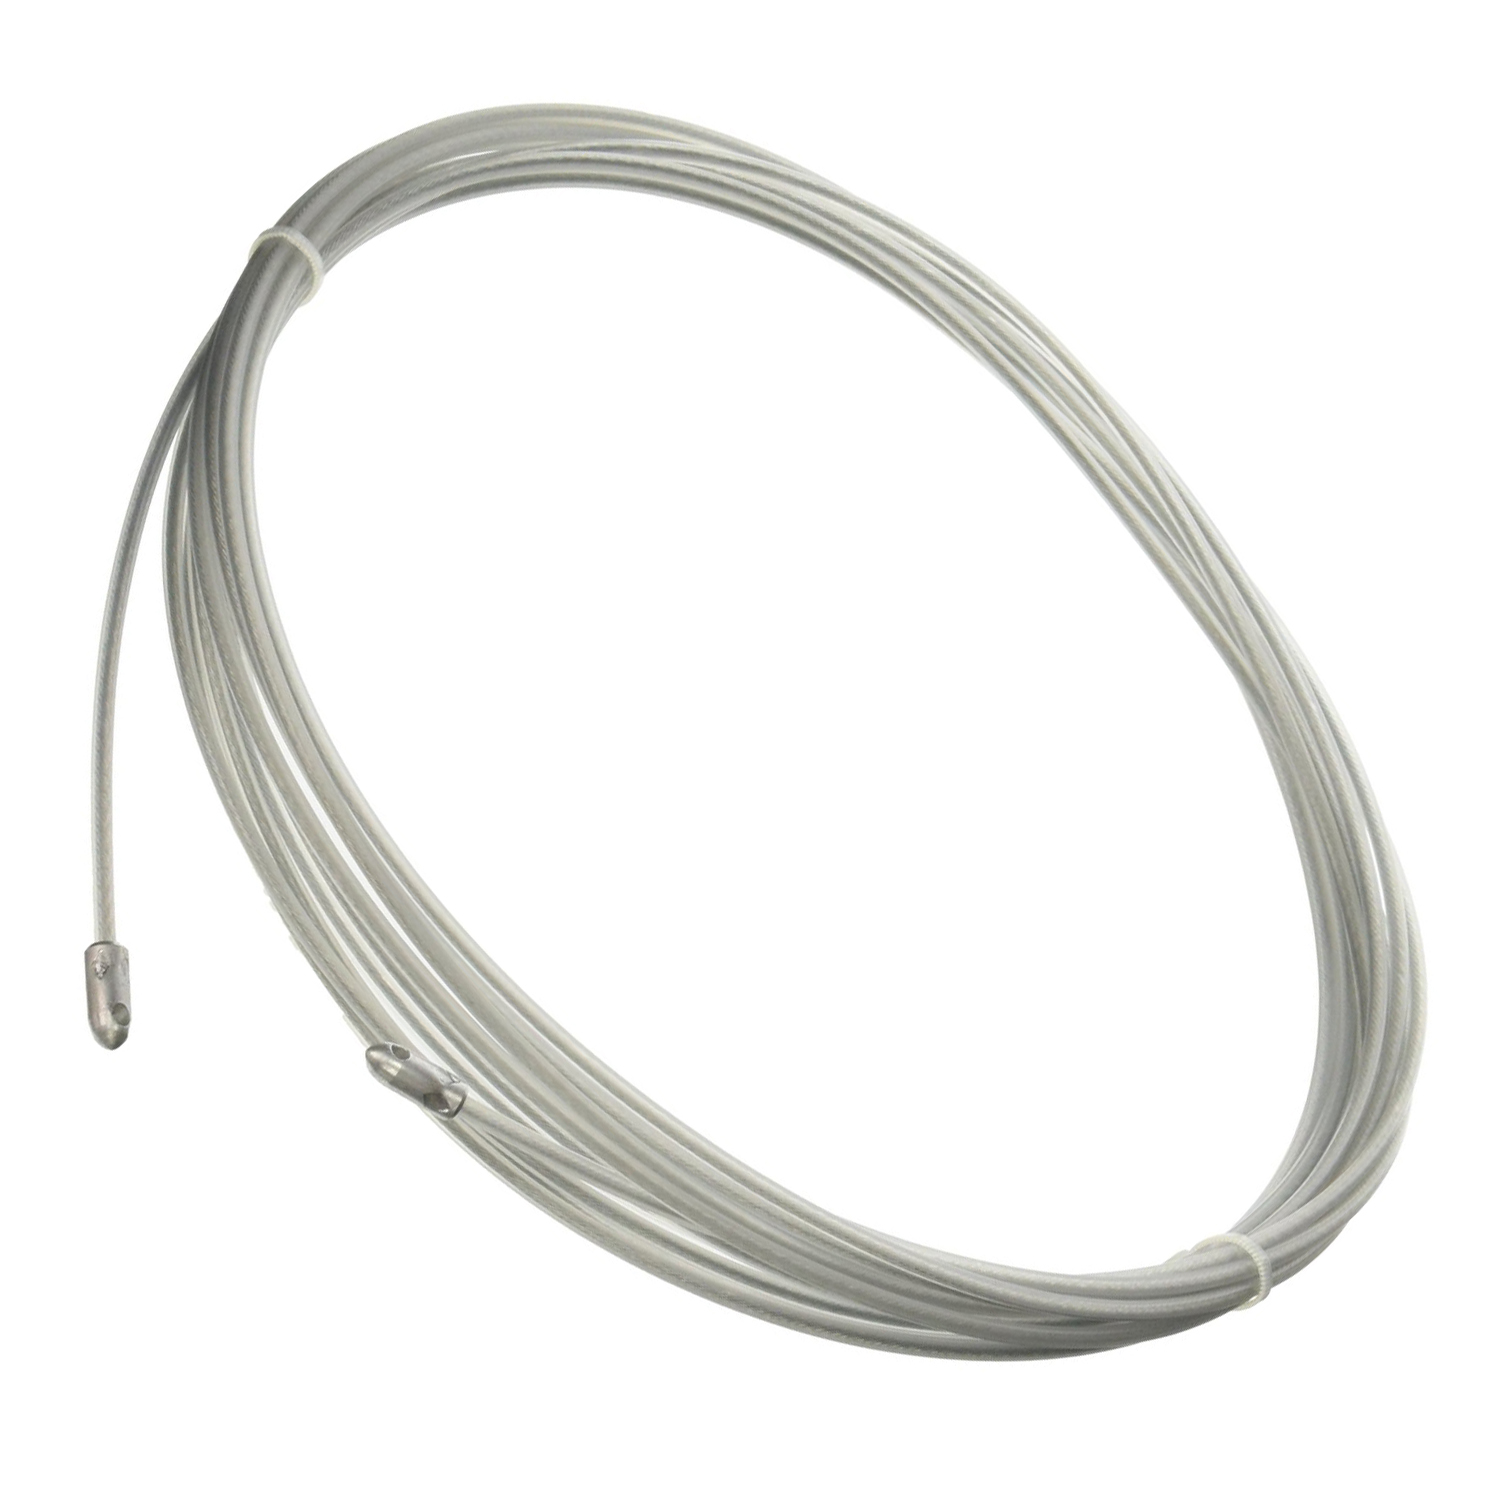 Aliexpress.com : Buy 10M 33Ft Electrical Wire Threader Cable ...